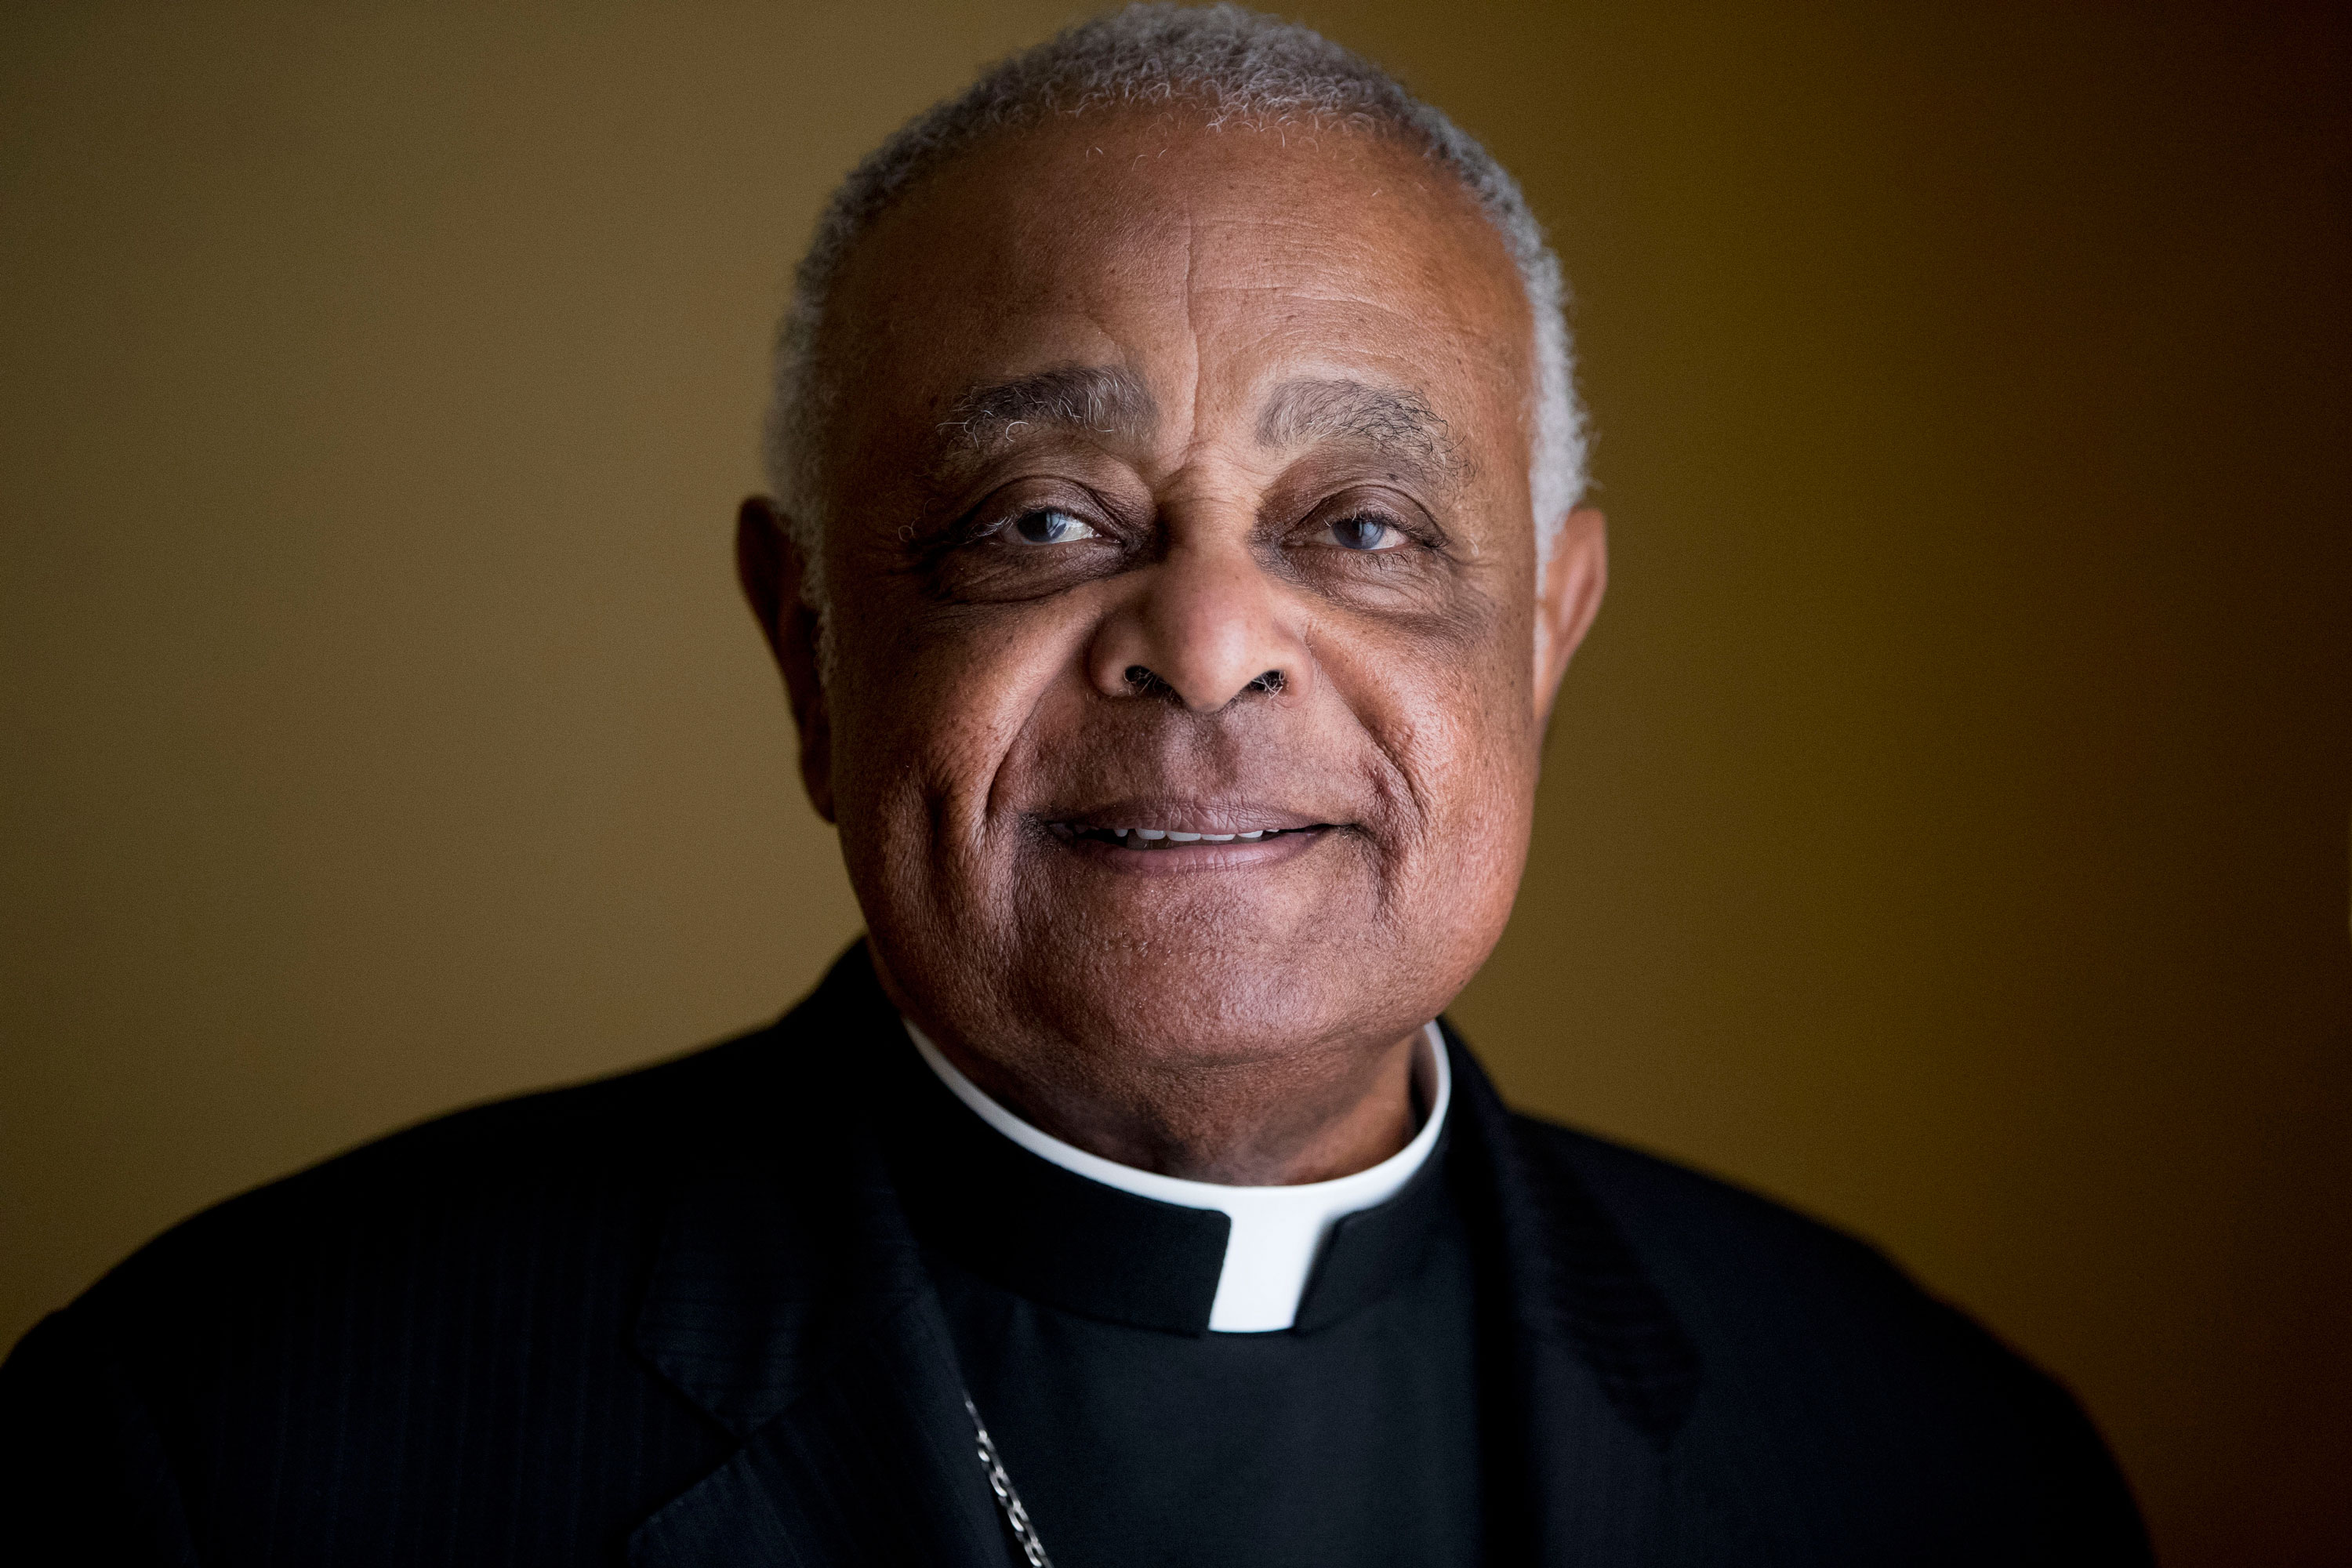 This archbishop has become the first African American cardinal in Catholic history